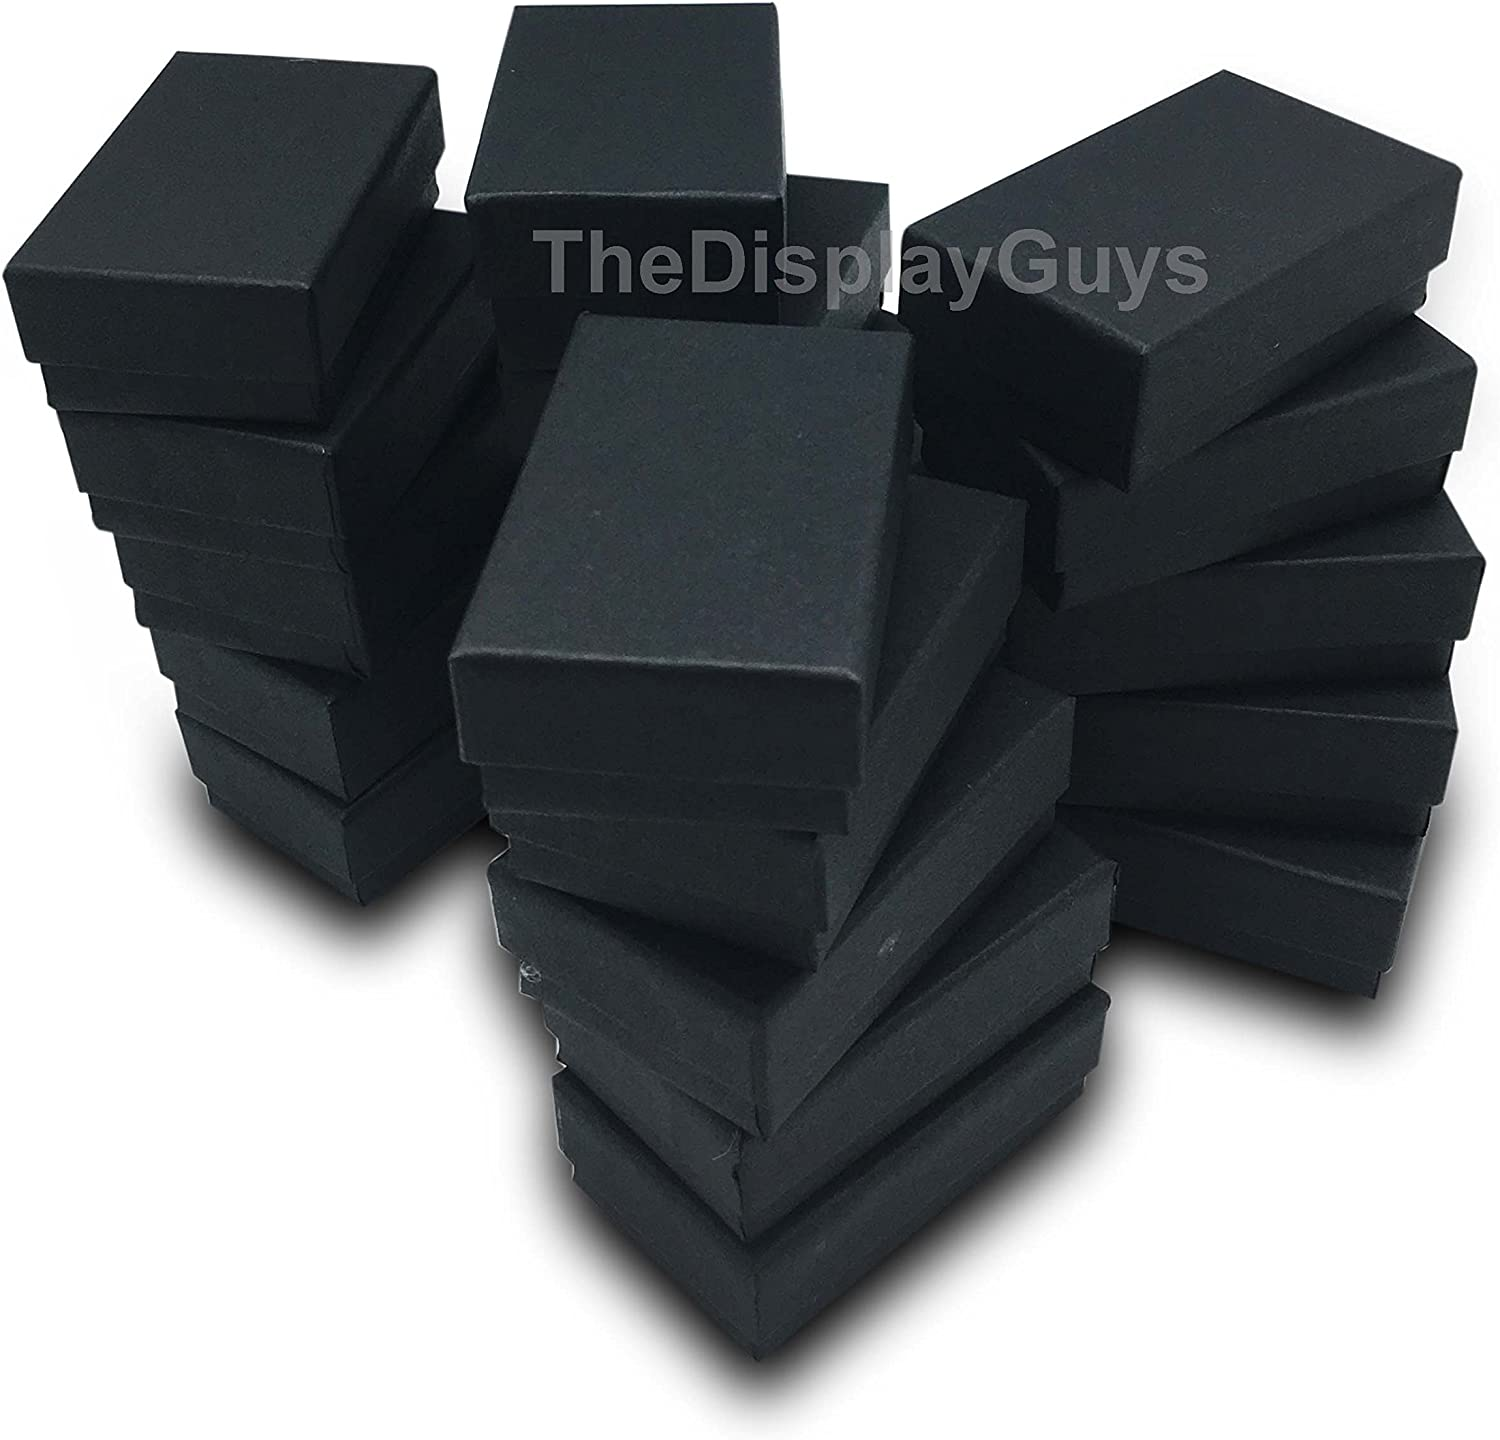 "The Display Guys – Cardboard Jewelry Boxes With Cotton – 100 Pack – Matte Black – #21 (2 5/8"" x 1 5/8"" x 1""): Home & Kitchen"